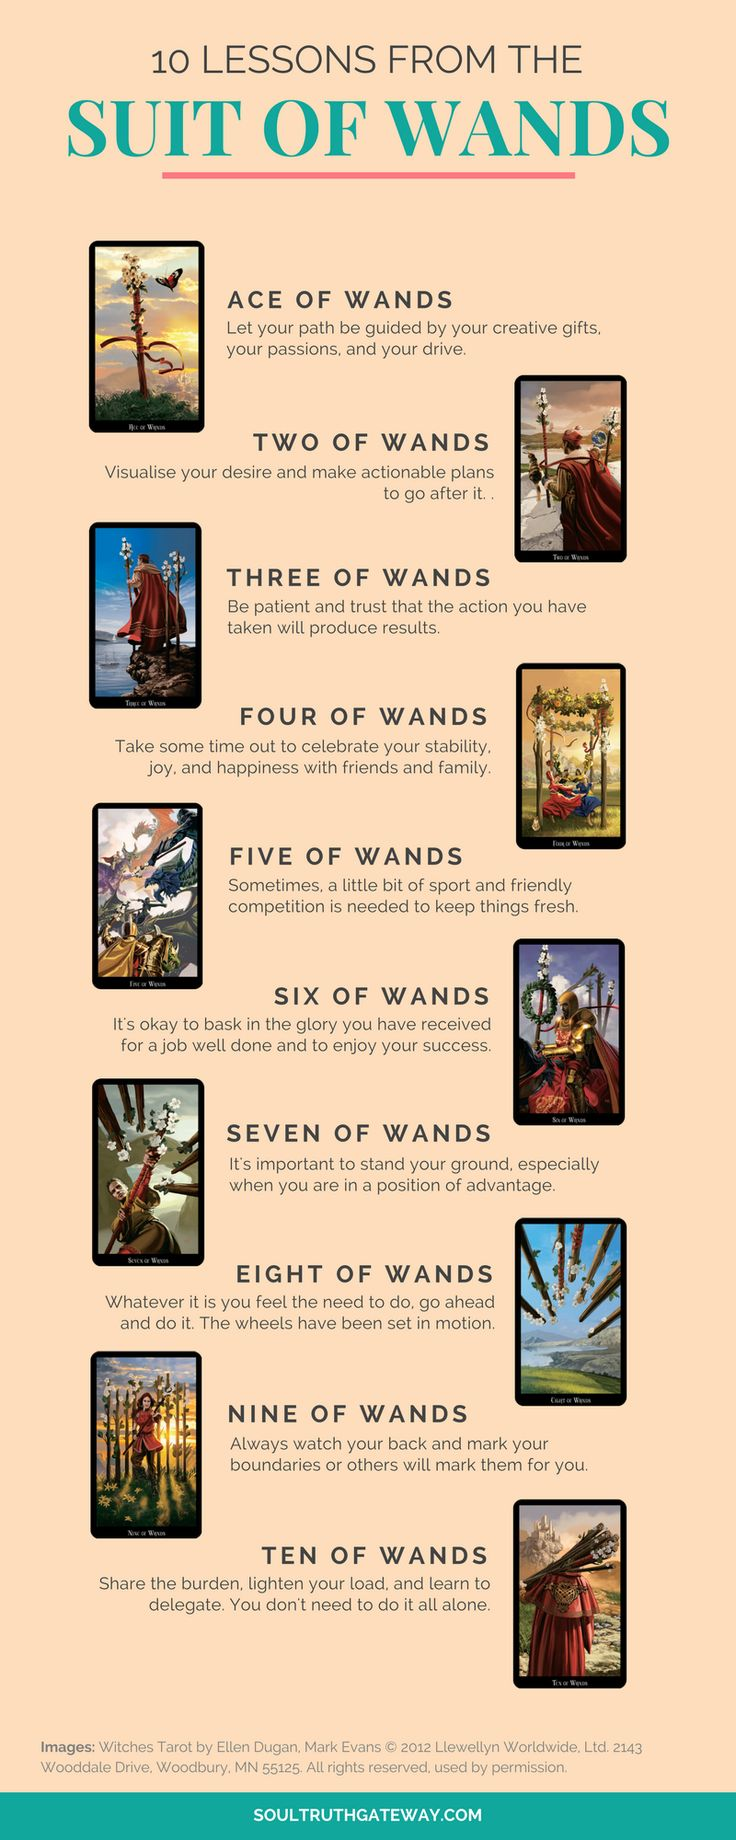 10 Lessons from the Minor Arcana: the Suit of Wands | Tarot Learning | Tarot Meanings | Tarot Cheat Sheet | Tarot Minor Arcana | Tarot Wands #tarot #soultruthgateway #tarotcards&inspiration